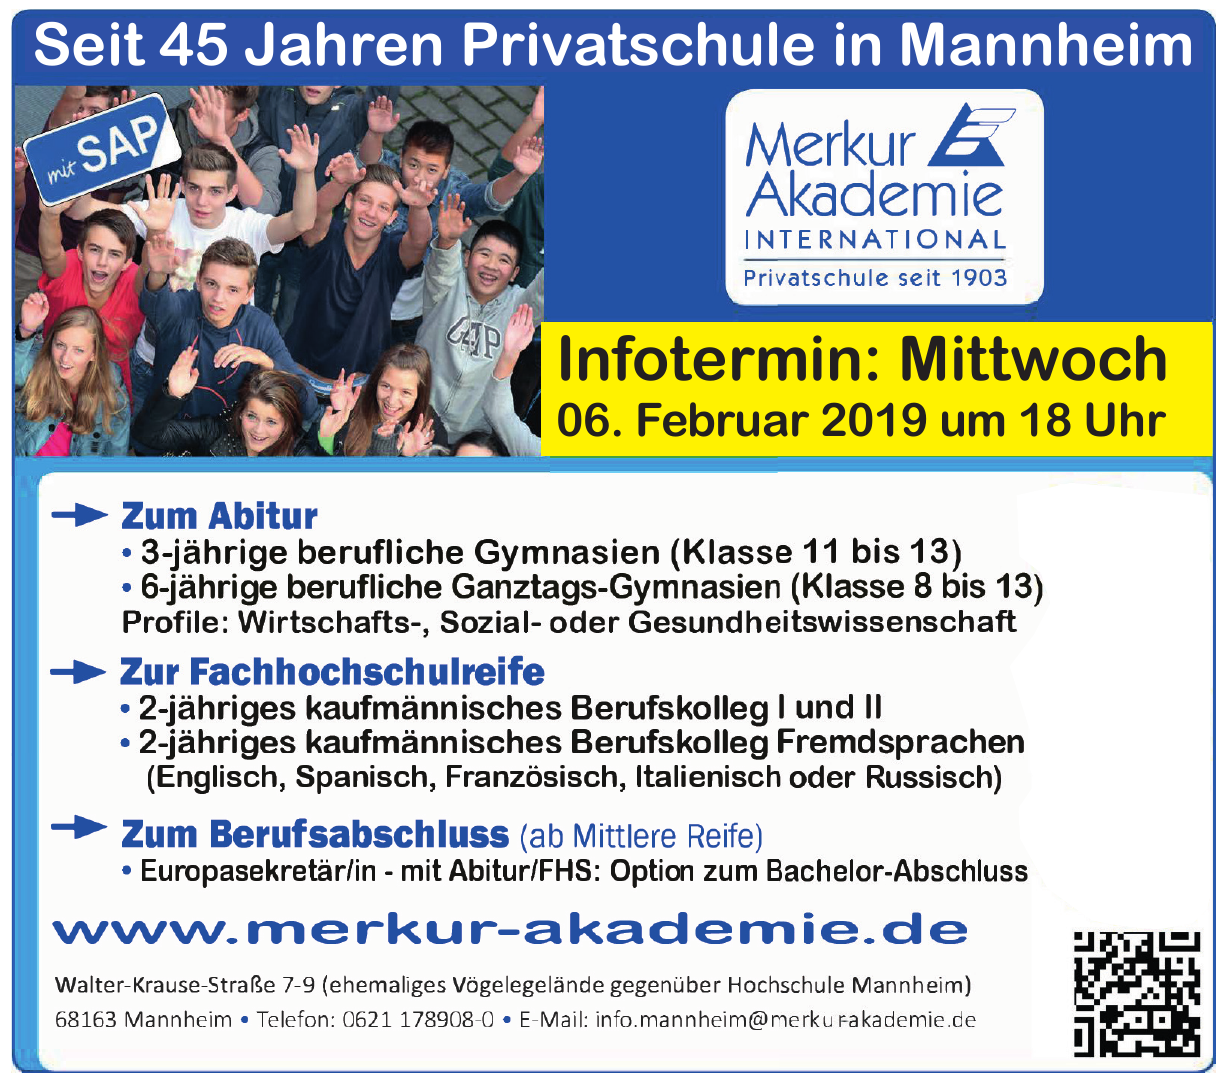 Merkur Akademie International Mannheim